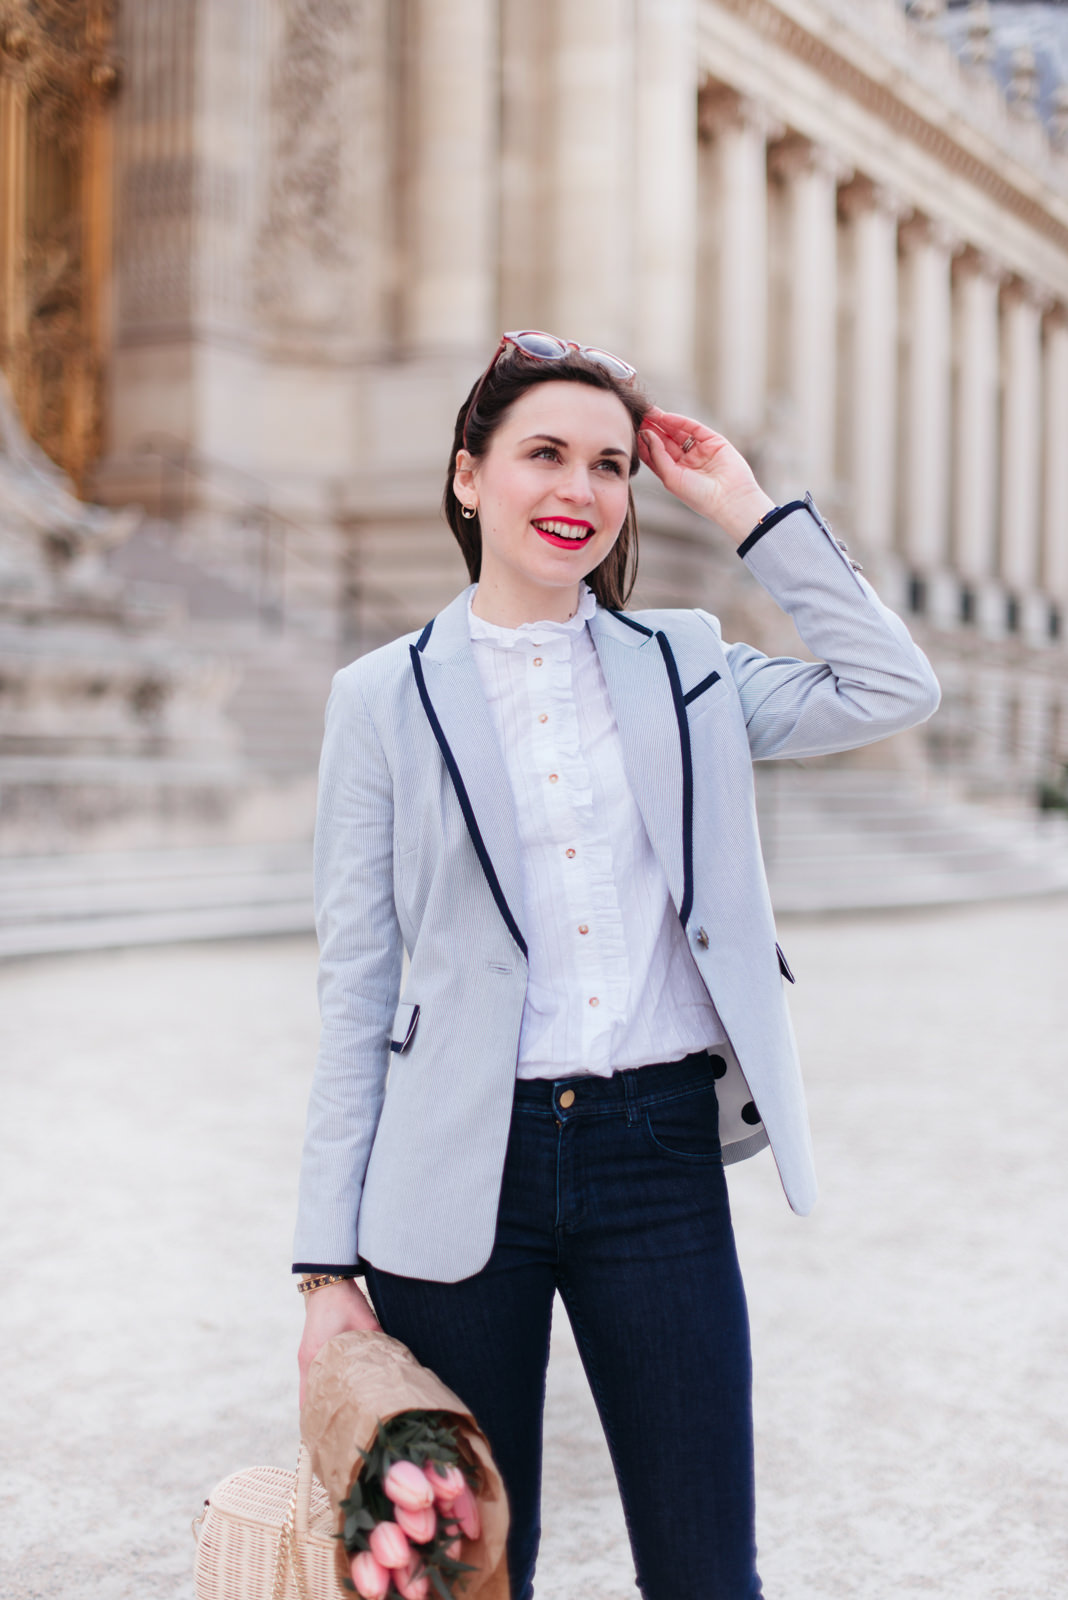 Blog-Mode-And-The-City-Looks-Faire-Venir-Le-Printemps-10